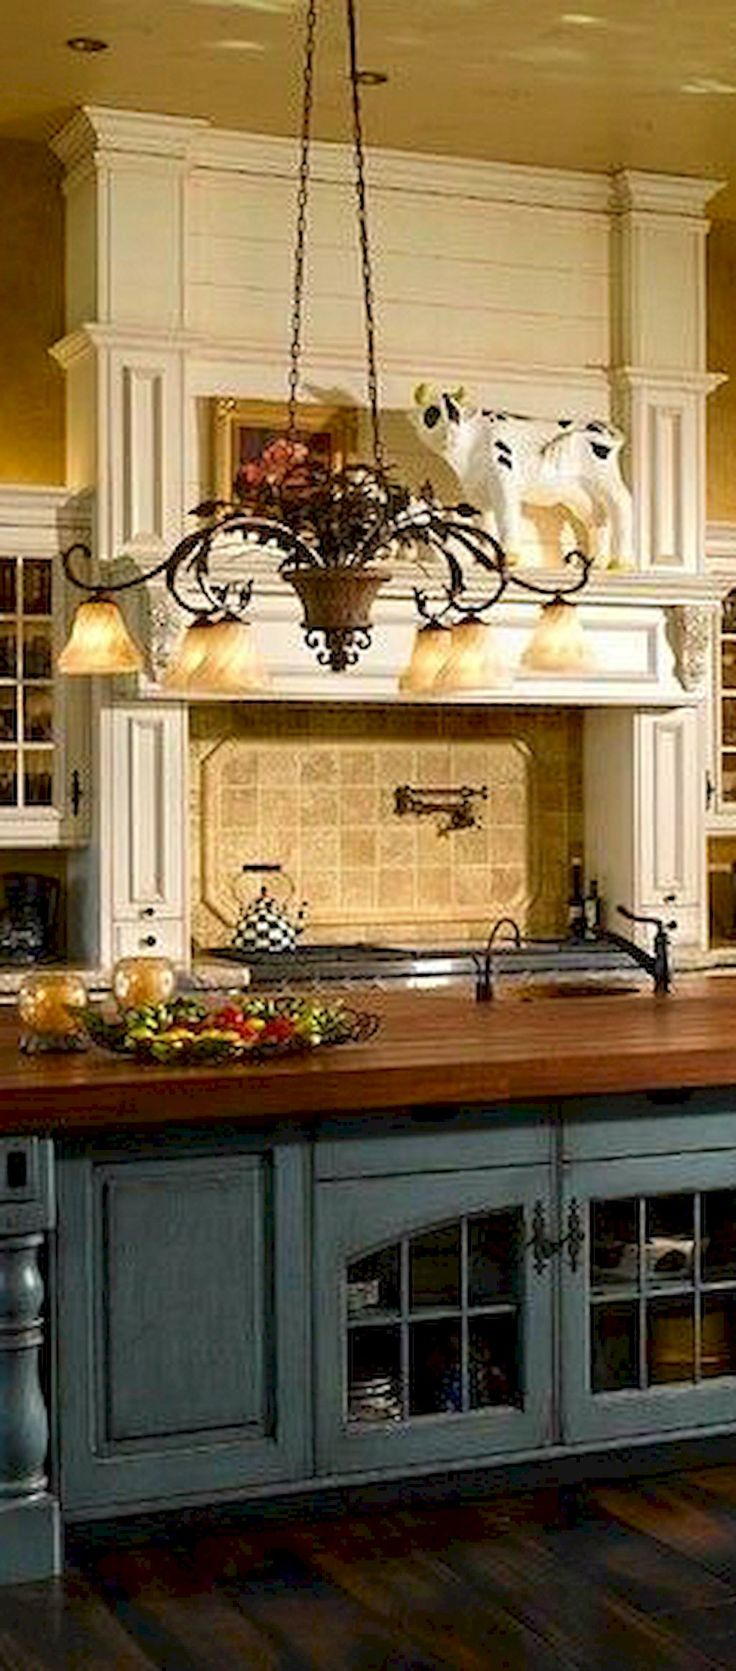 best 25 country kitchen designs ideas on pinterest country 35 incredible french country kitchen design ideas